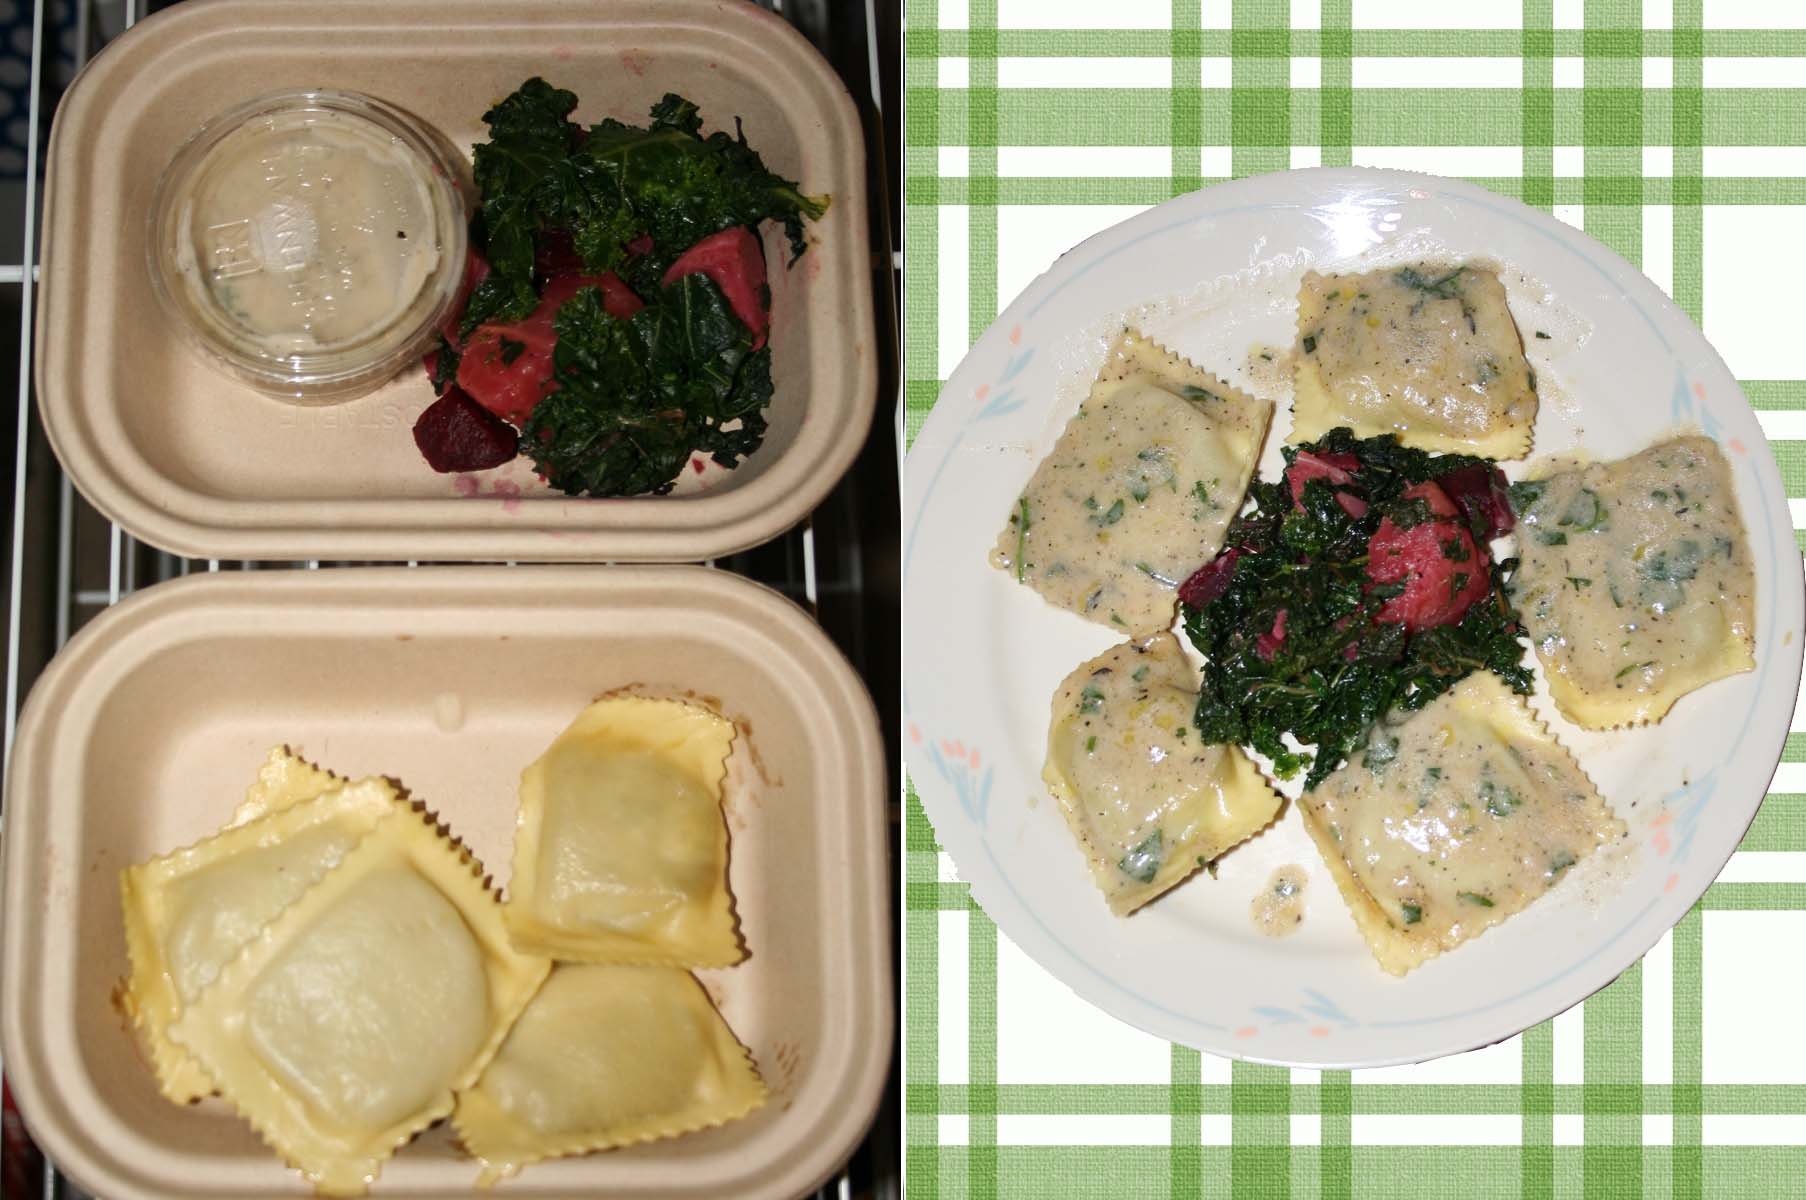 Galley's  caramelized onion and pancetta ravioli in a creamy herb sauce with a roasted beet and kale salad. (Photos: Mark Heckathorn/DC on Heels)